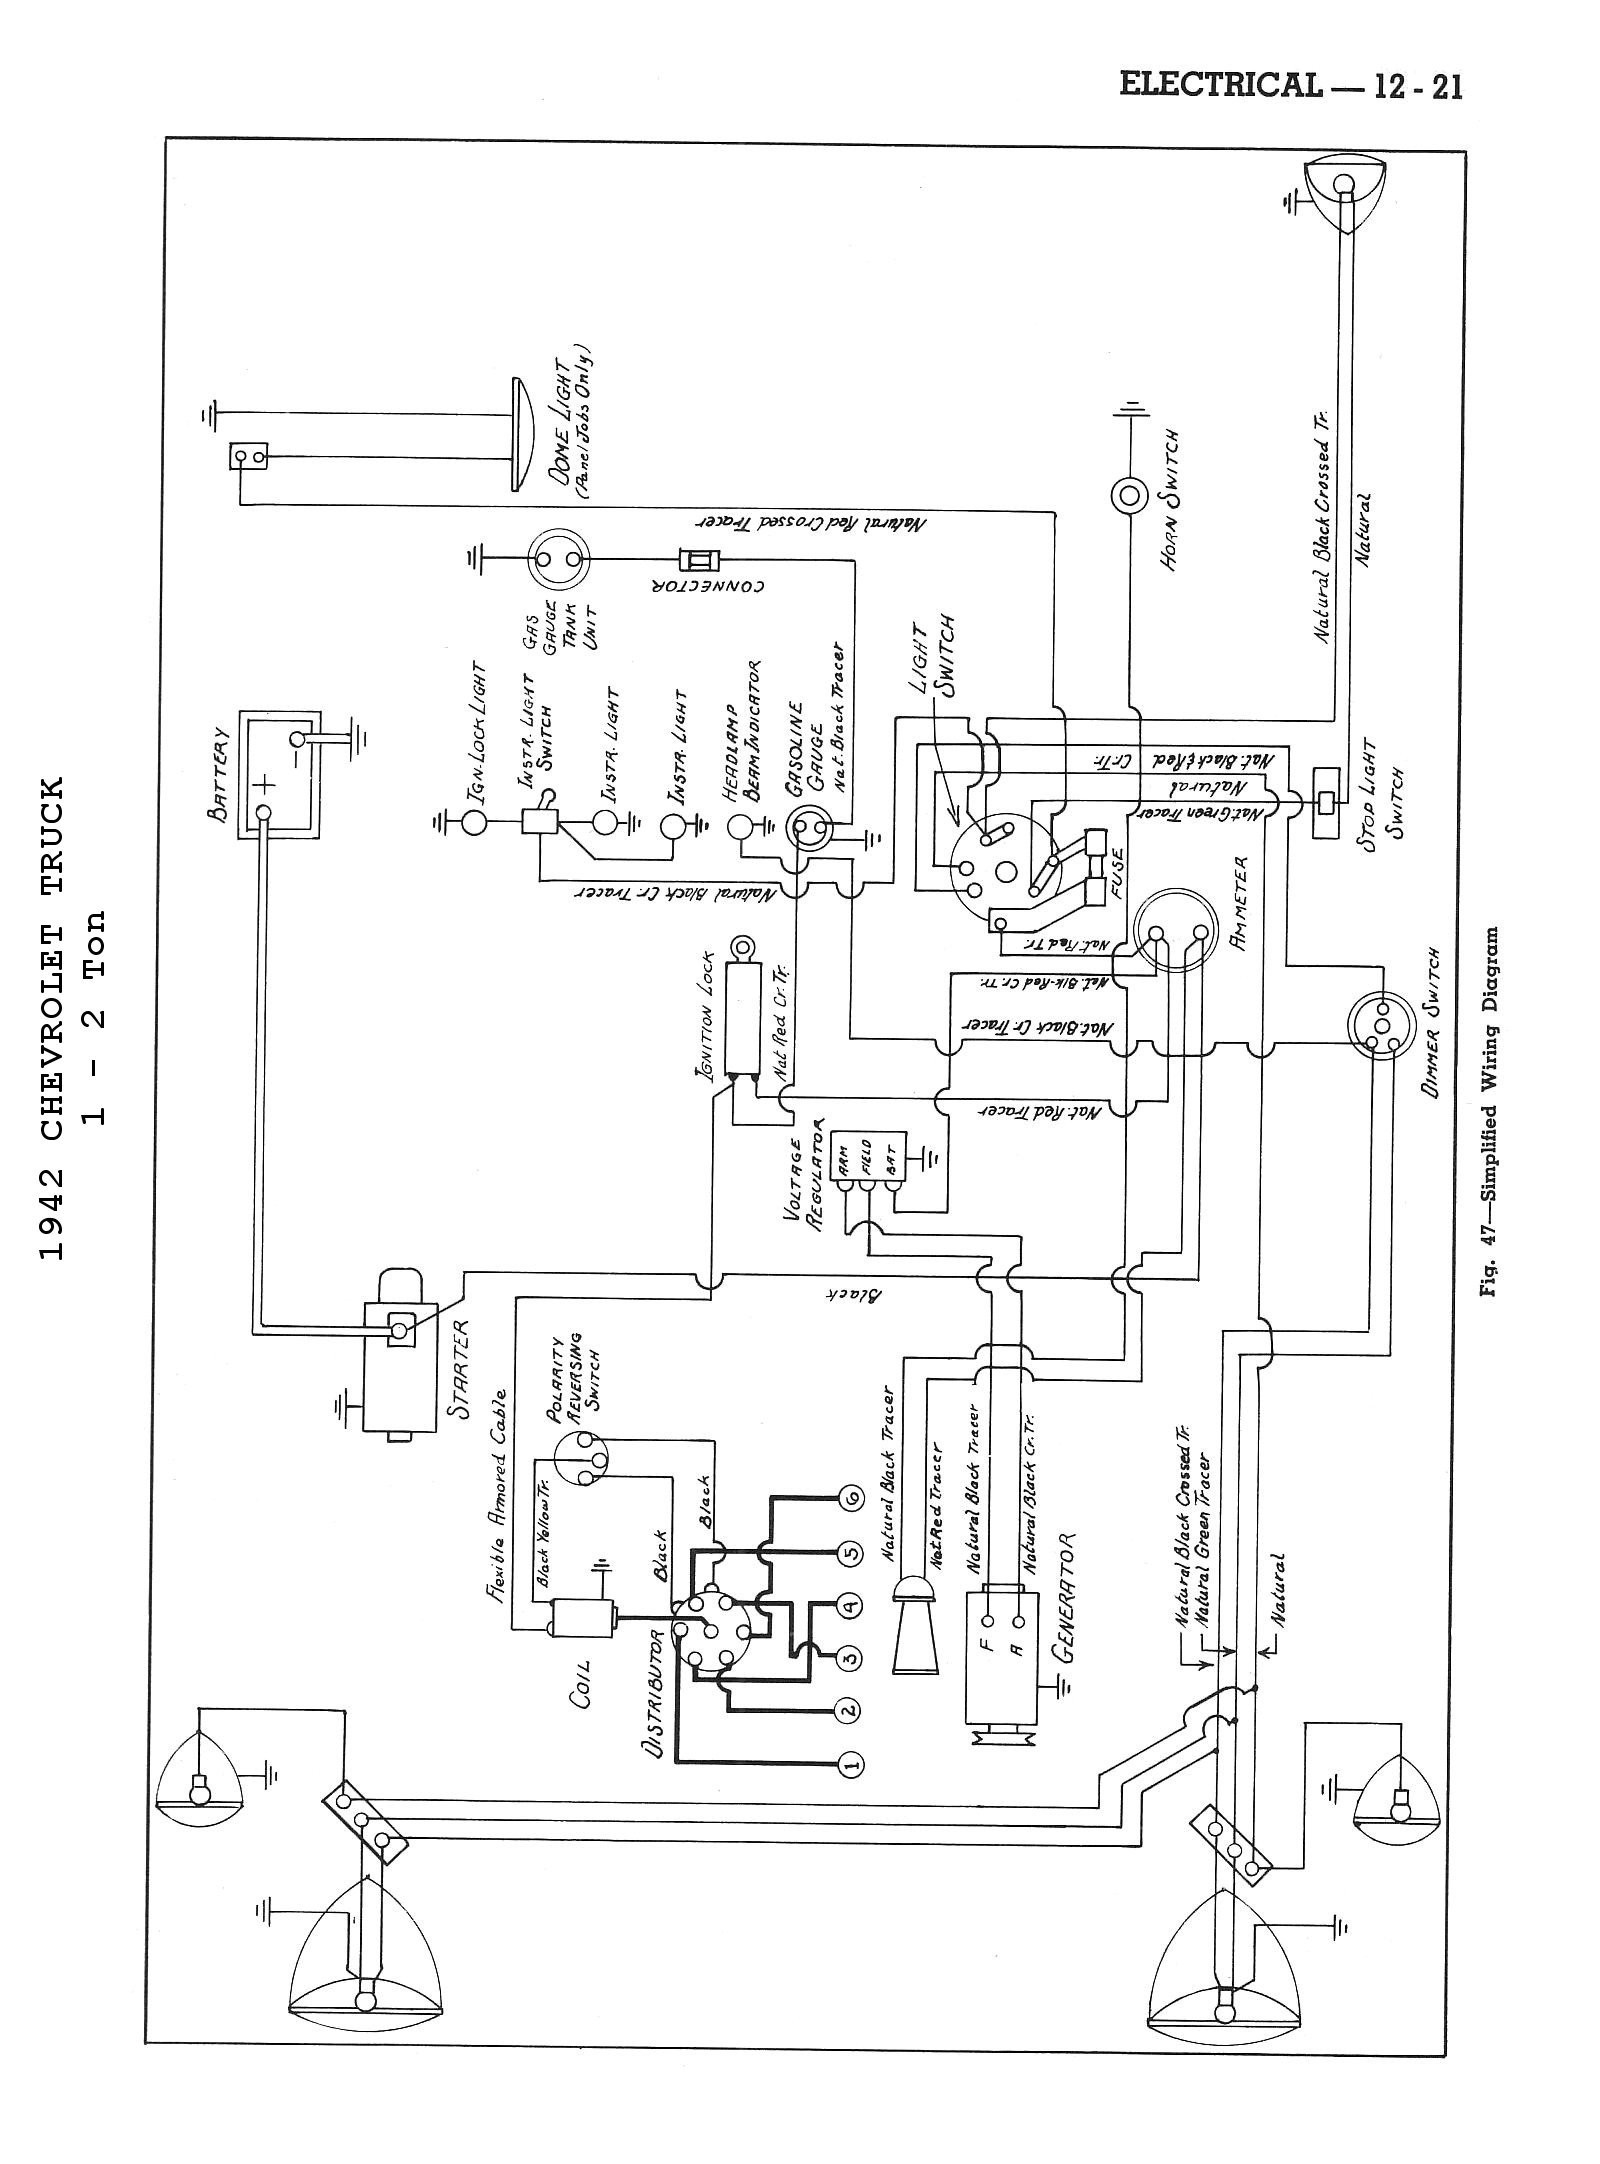 windshield wiper diagram wiring diagram for trailer with